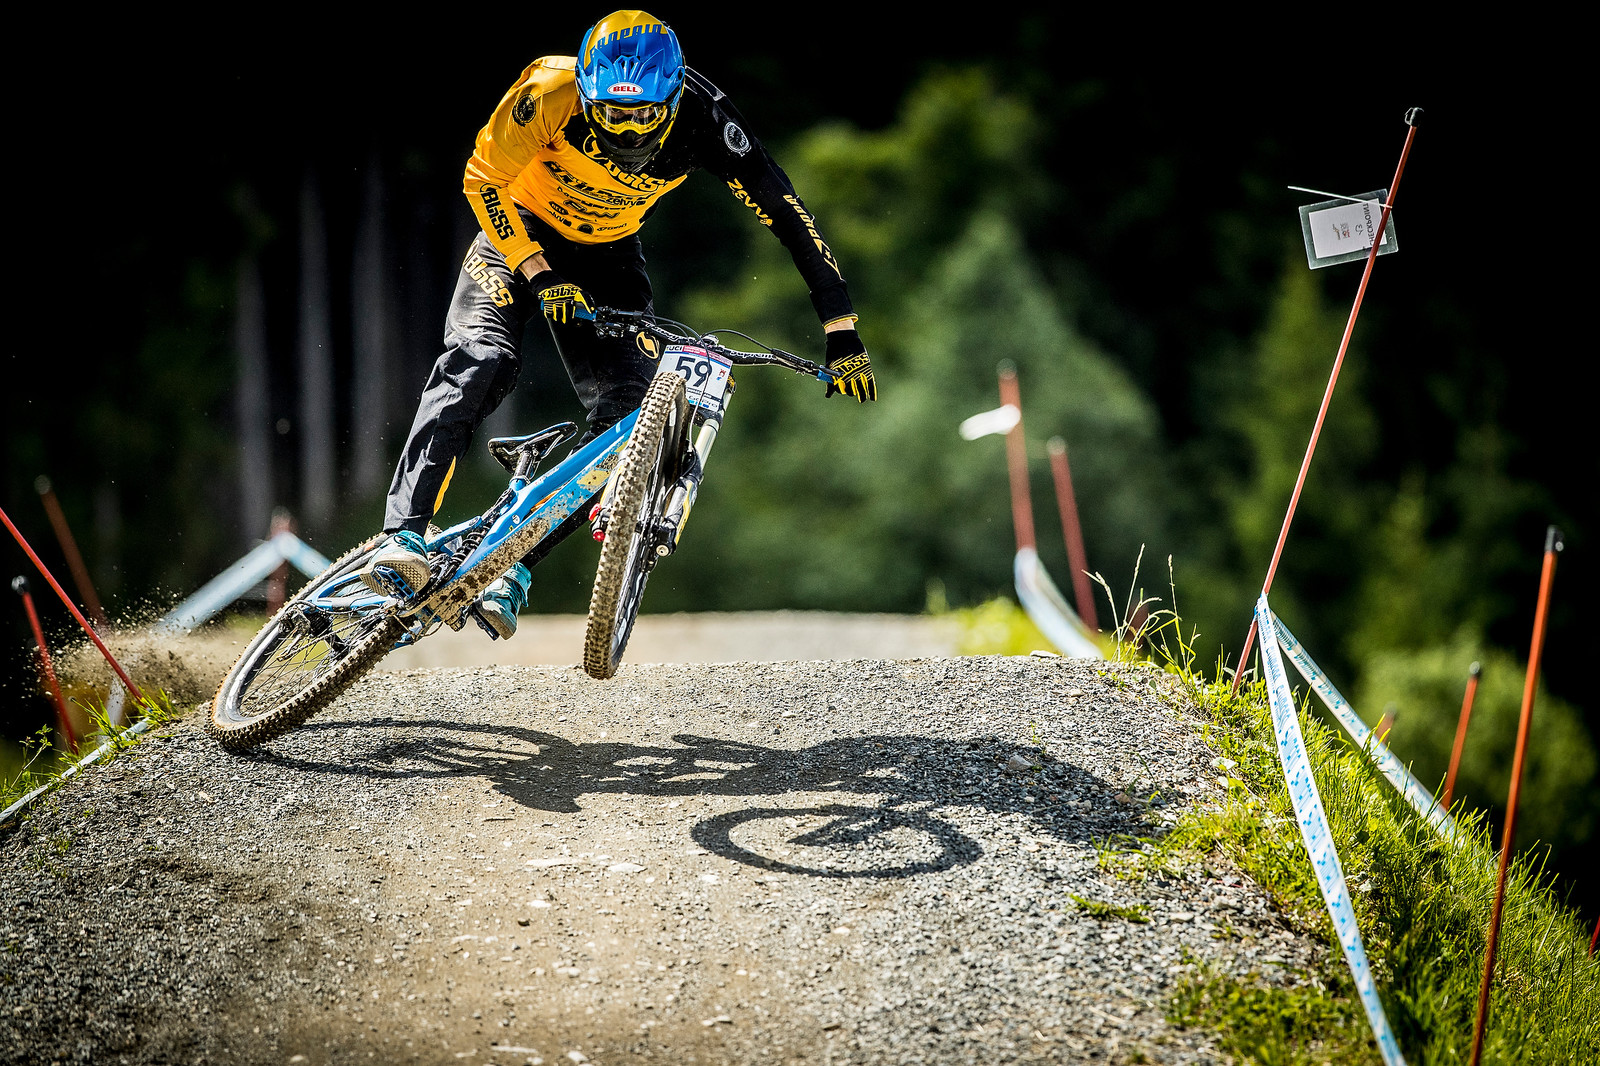 Phil Atwill May Hate Leogang, But... - 14 Fantastic Phil Atwill Photos - Mountain Biking Pictures - Vital MTB